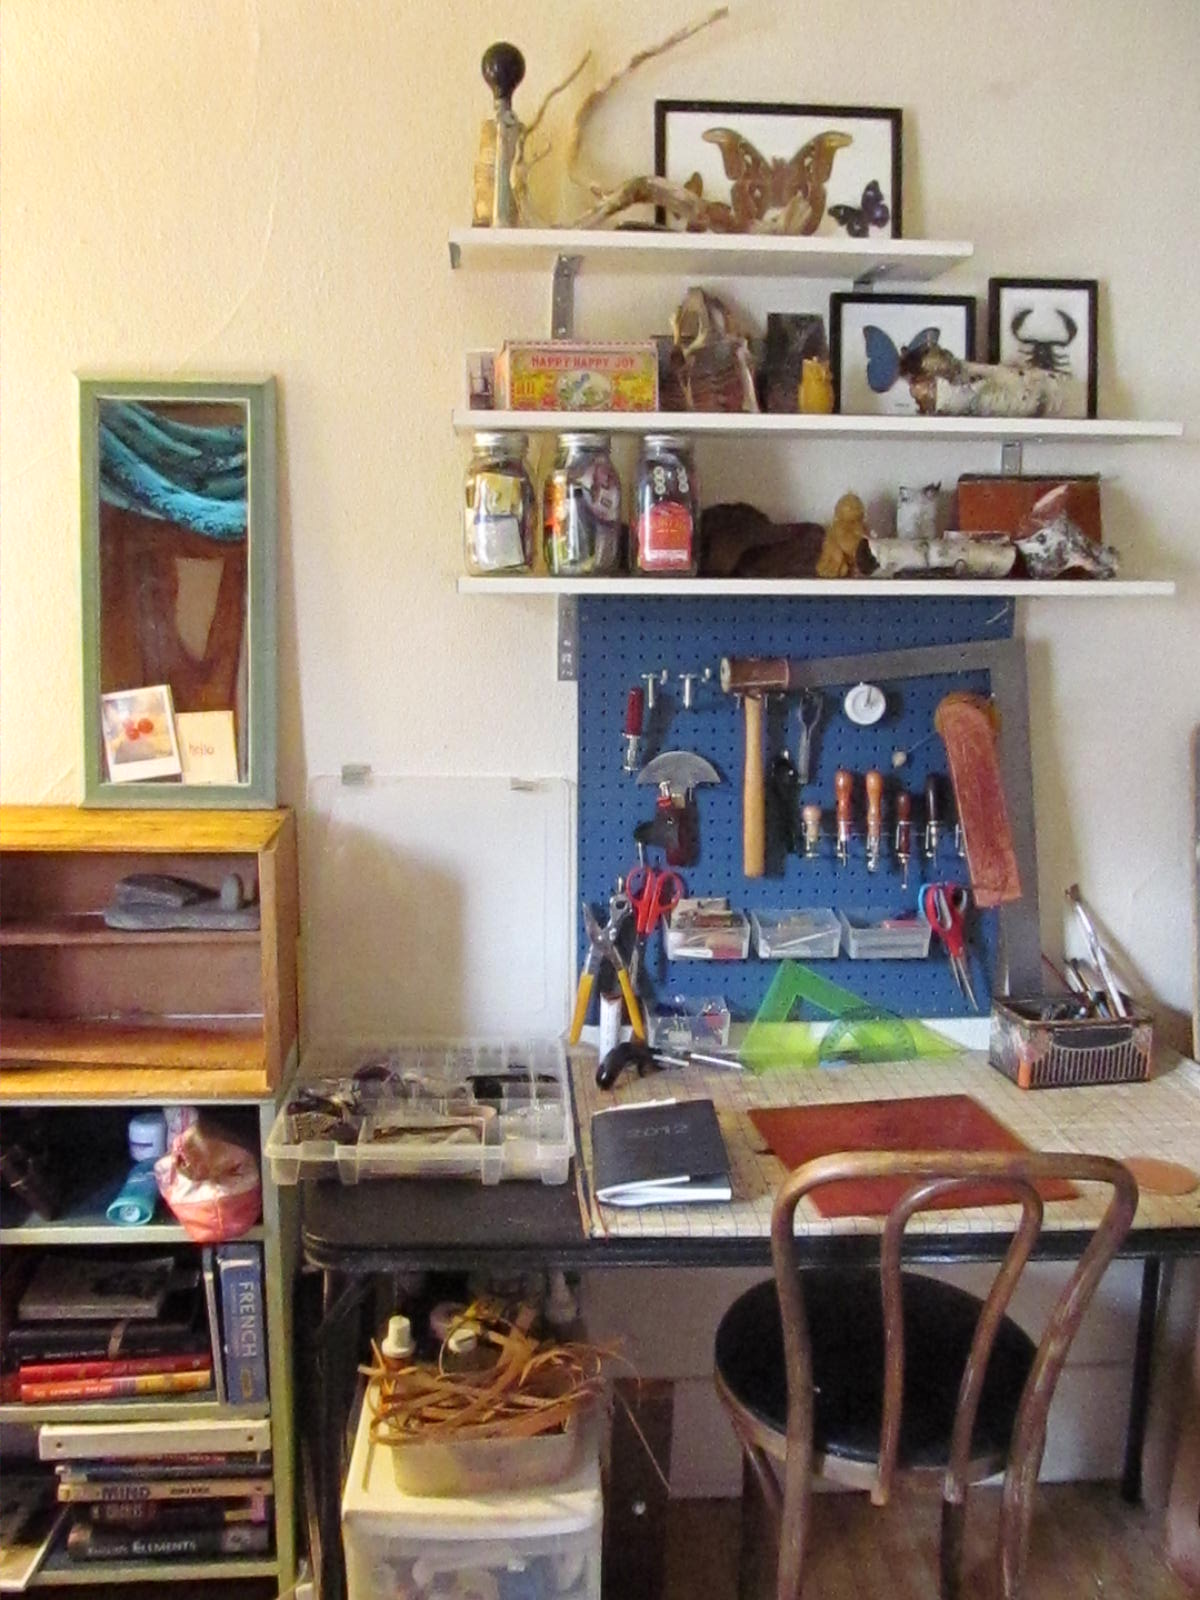 How to Create a Workspace in a Tiny Studio Apartment on a